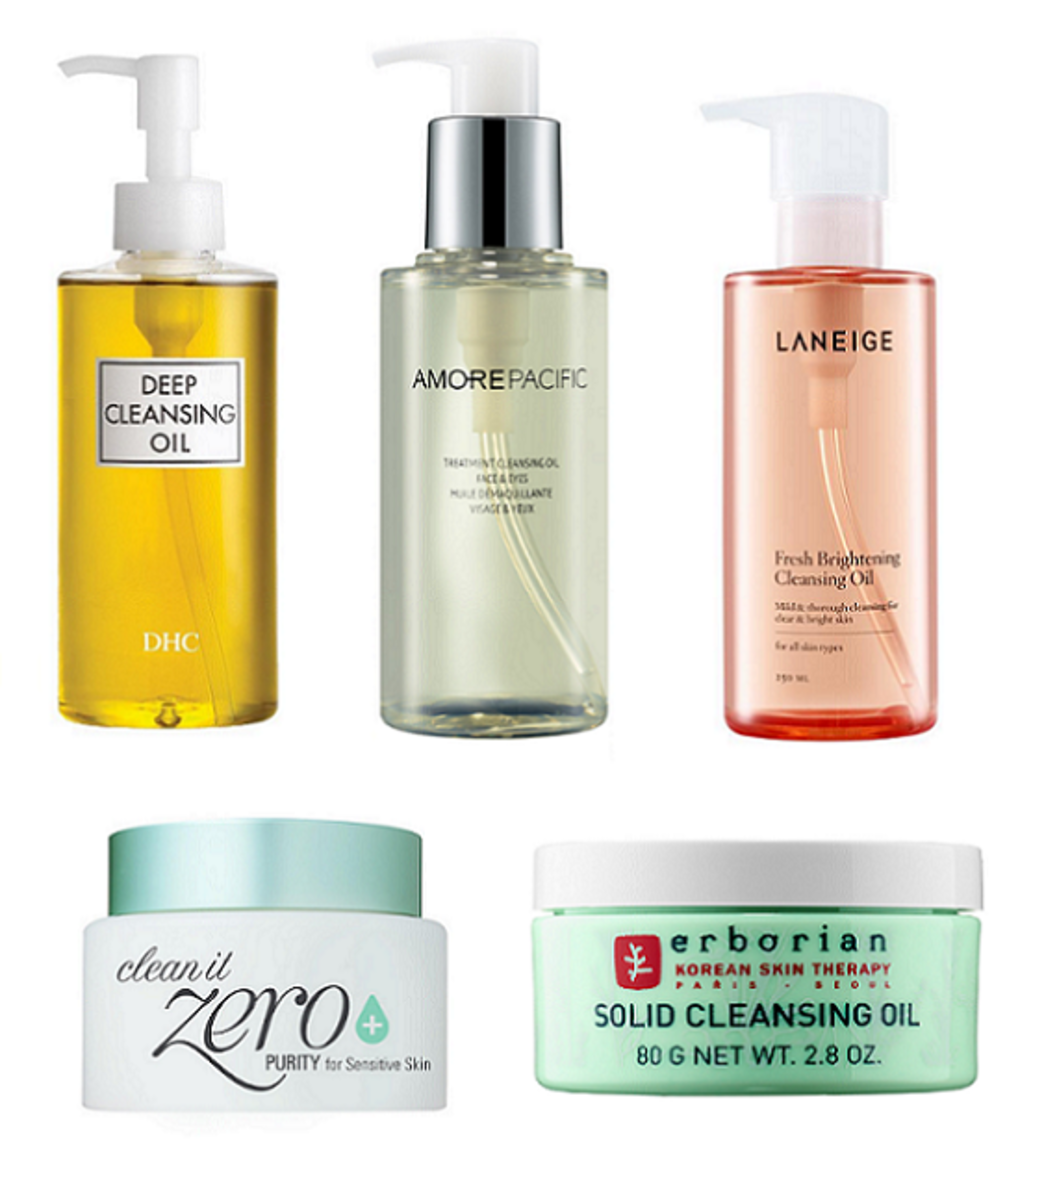 10 Easy Steps to Younger, Glowing Skin